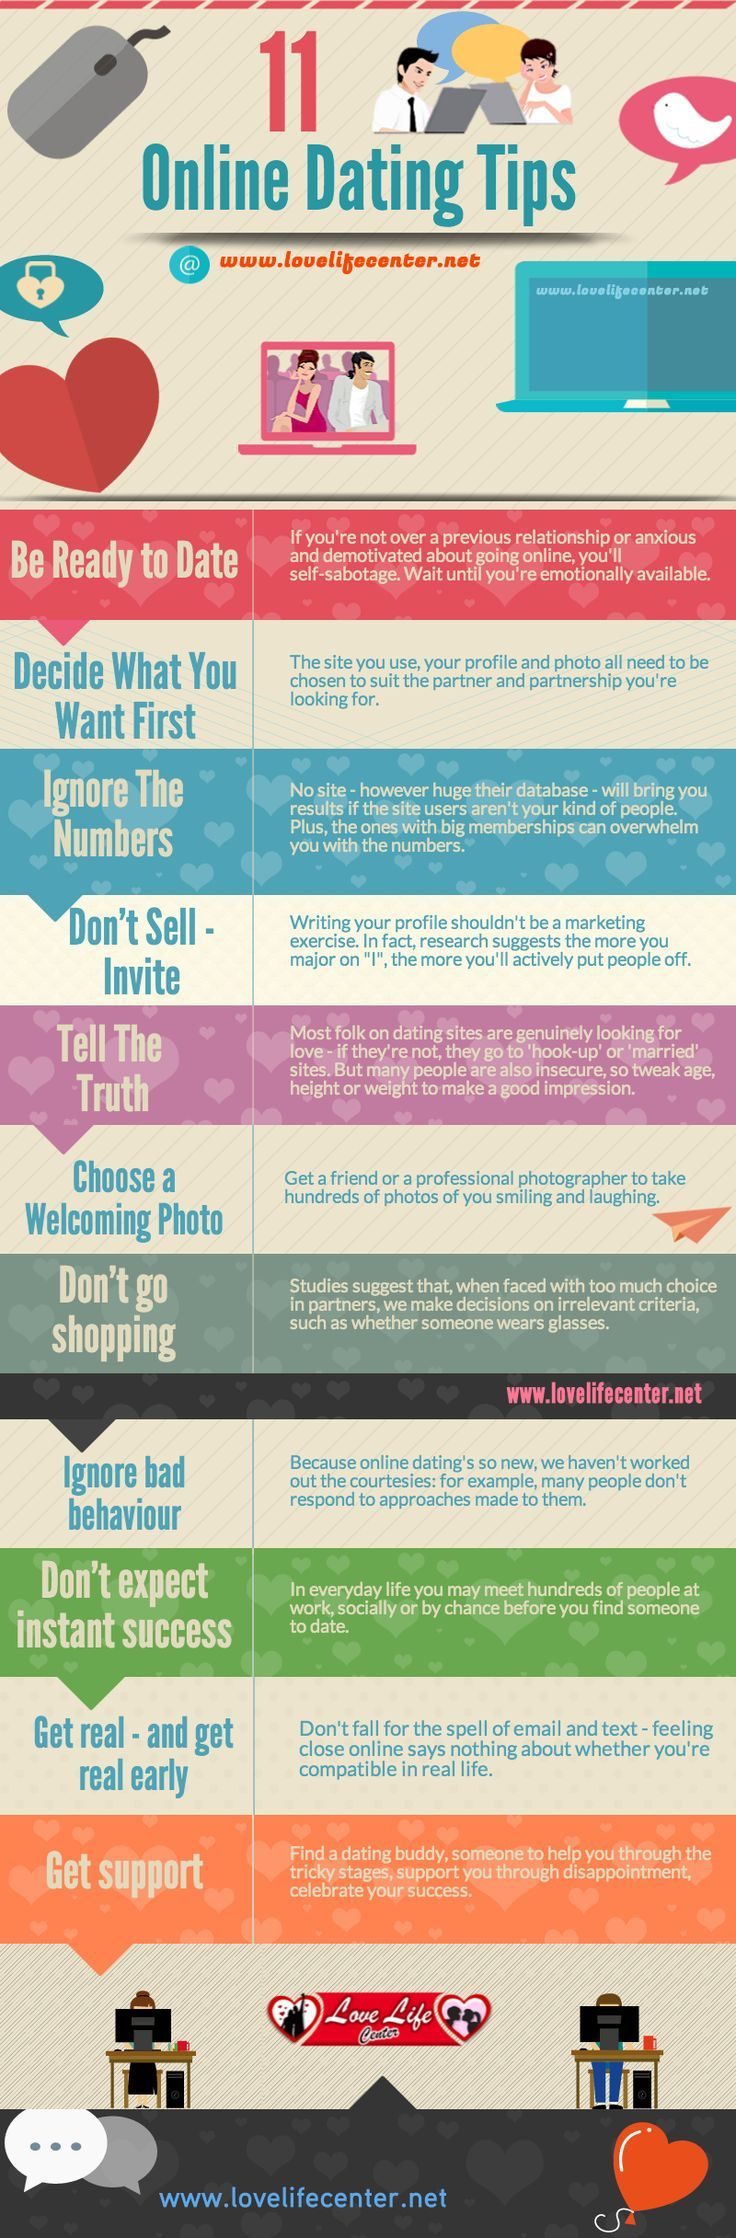 11 Online Dating Tips   #OnlineDating #DatingTips #infographic